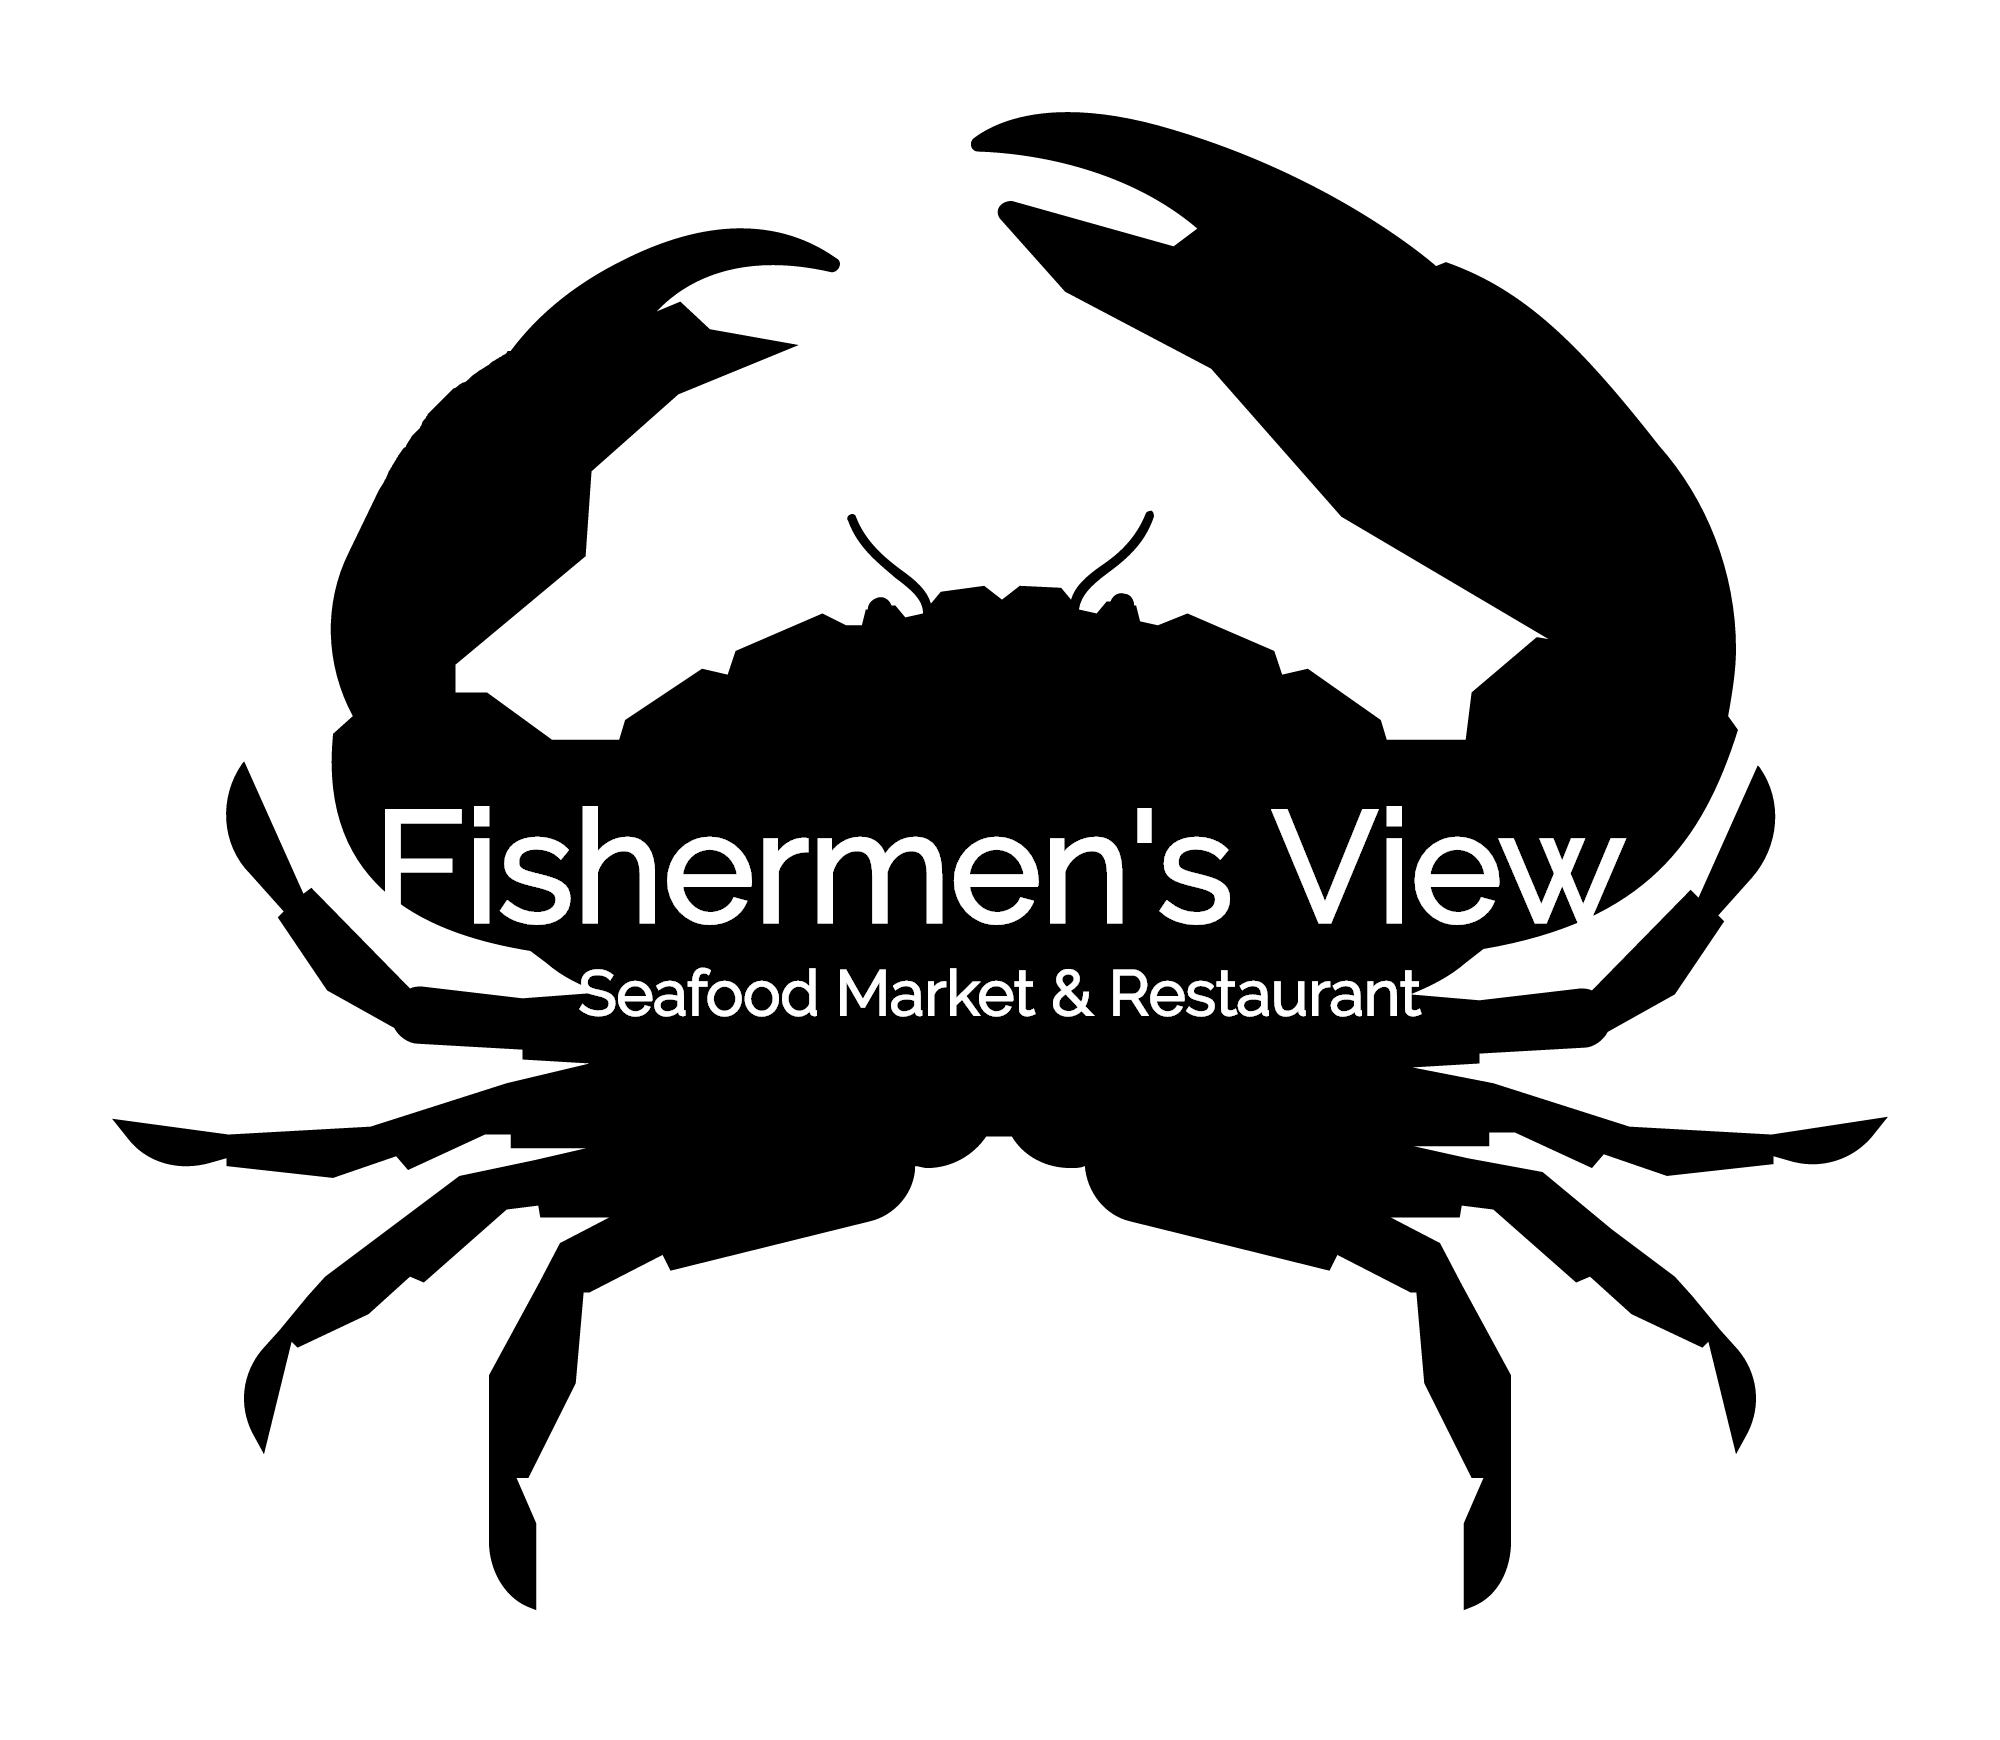 Fishermen's View